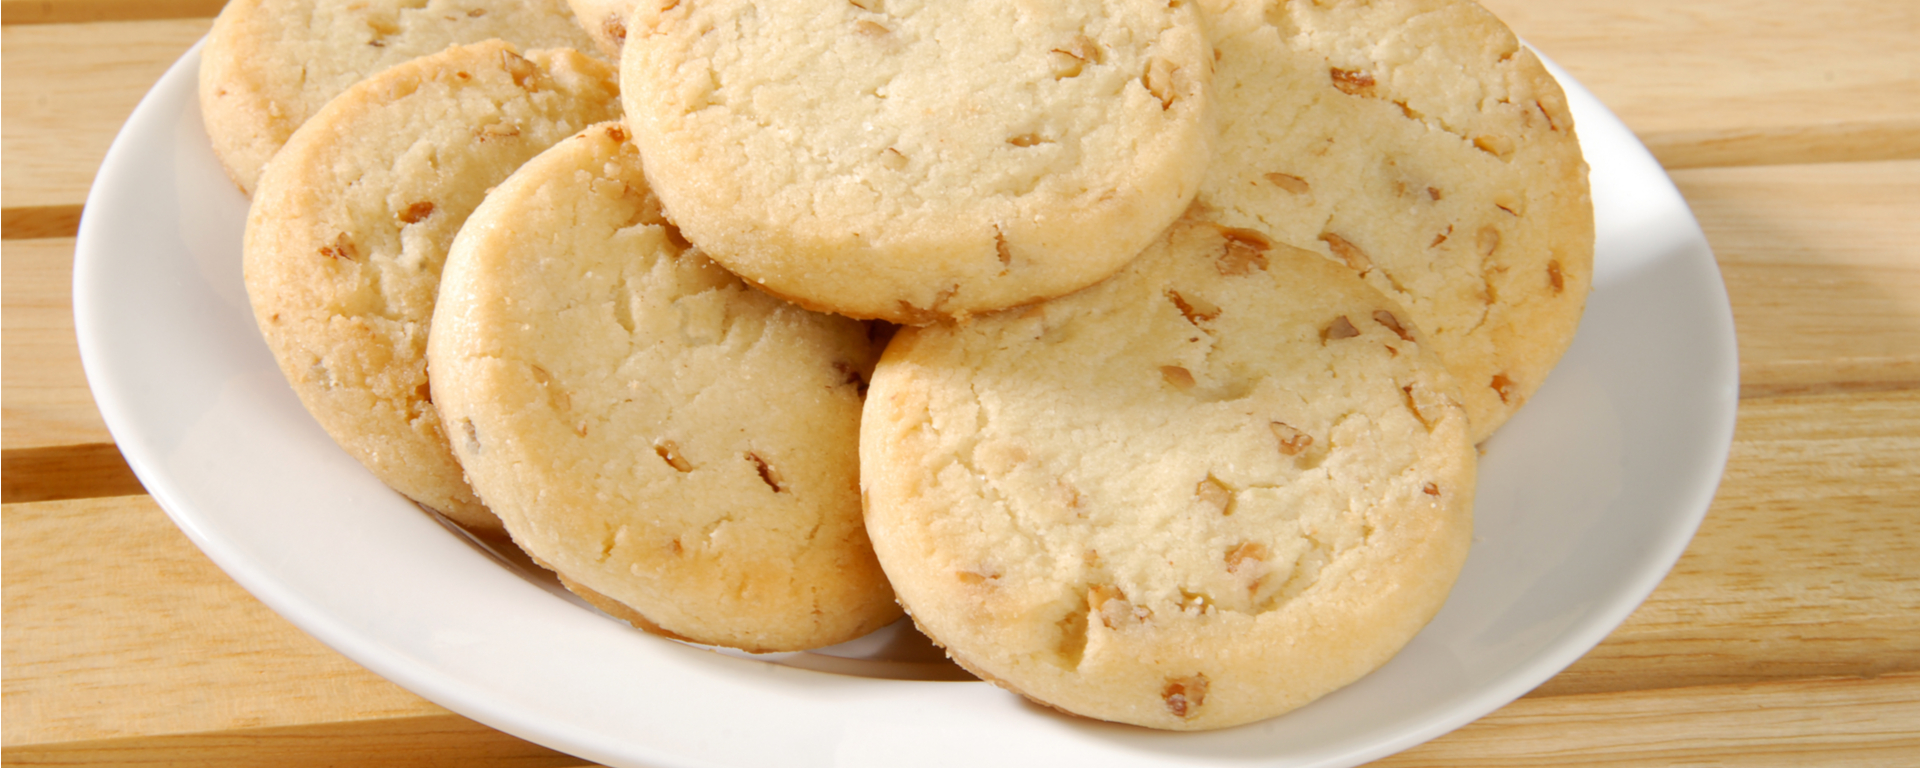 Photo for - Toffee Crunch Shortbread